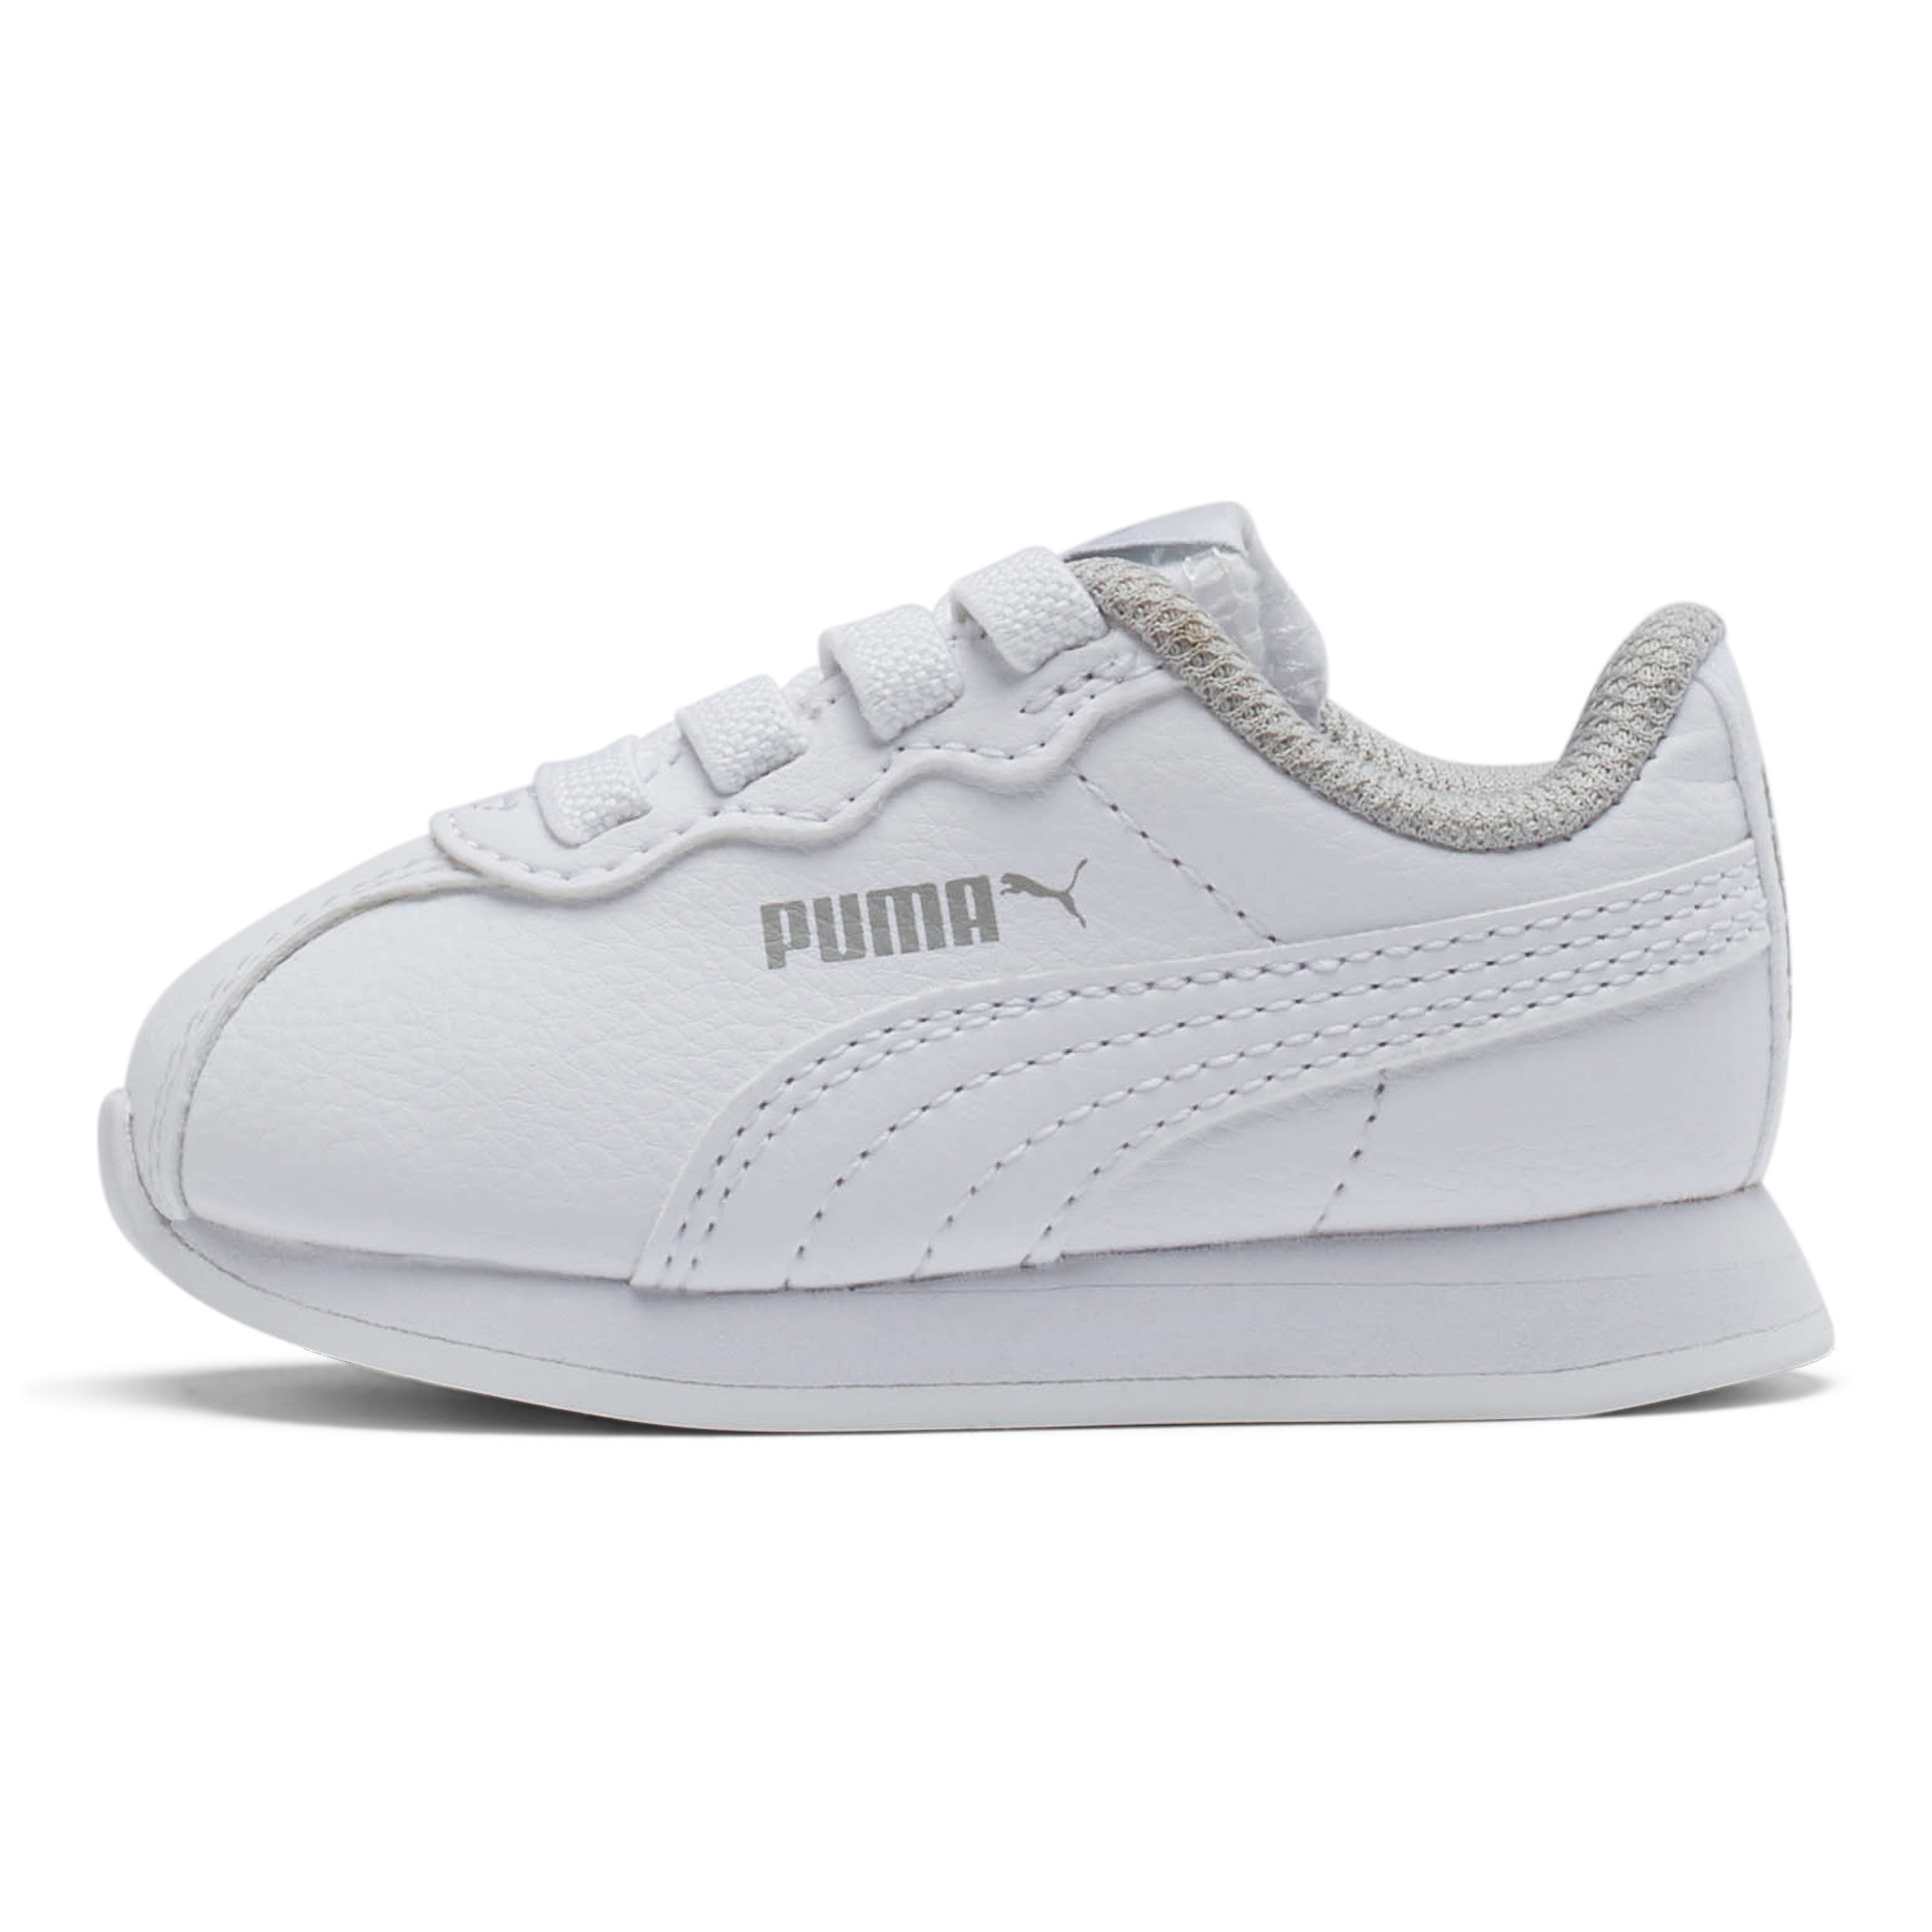 PUMA-Turin-II-AC-Toddler-Shoes-Kids-Shoe-Kids thumbnail 4